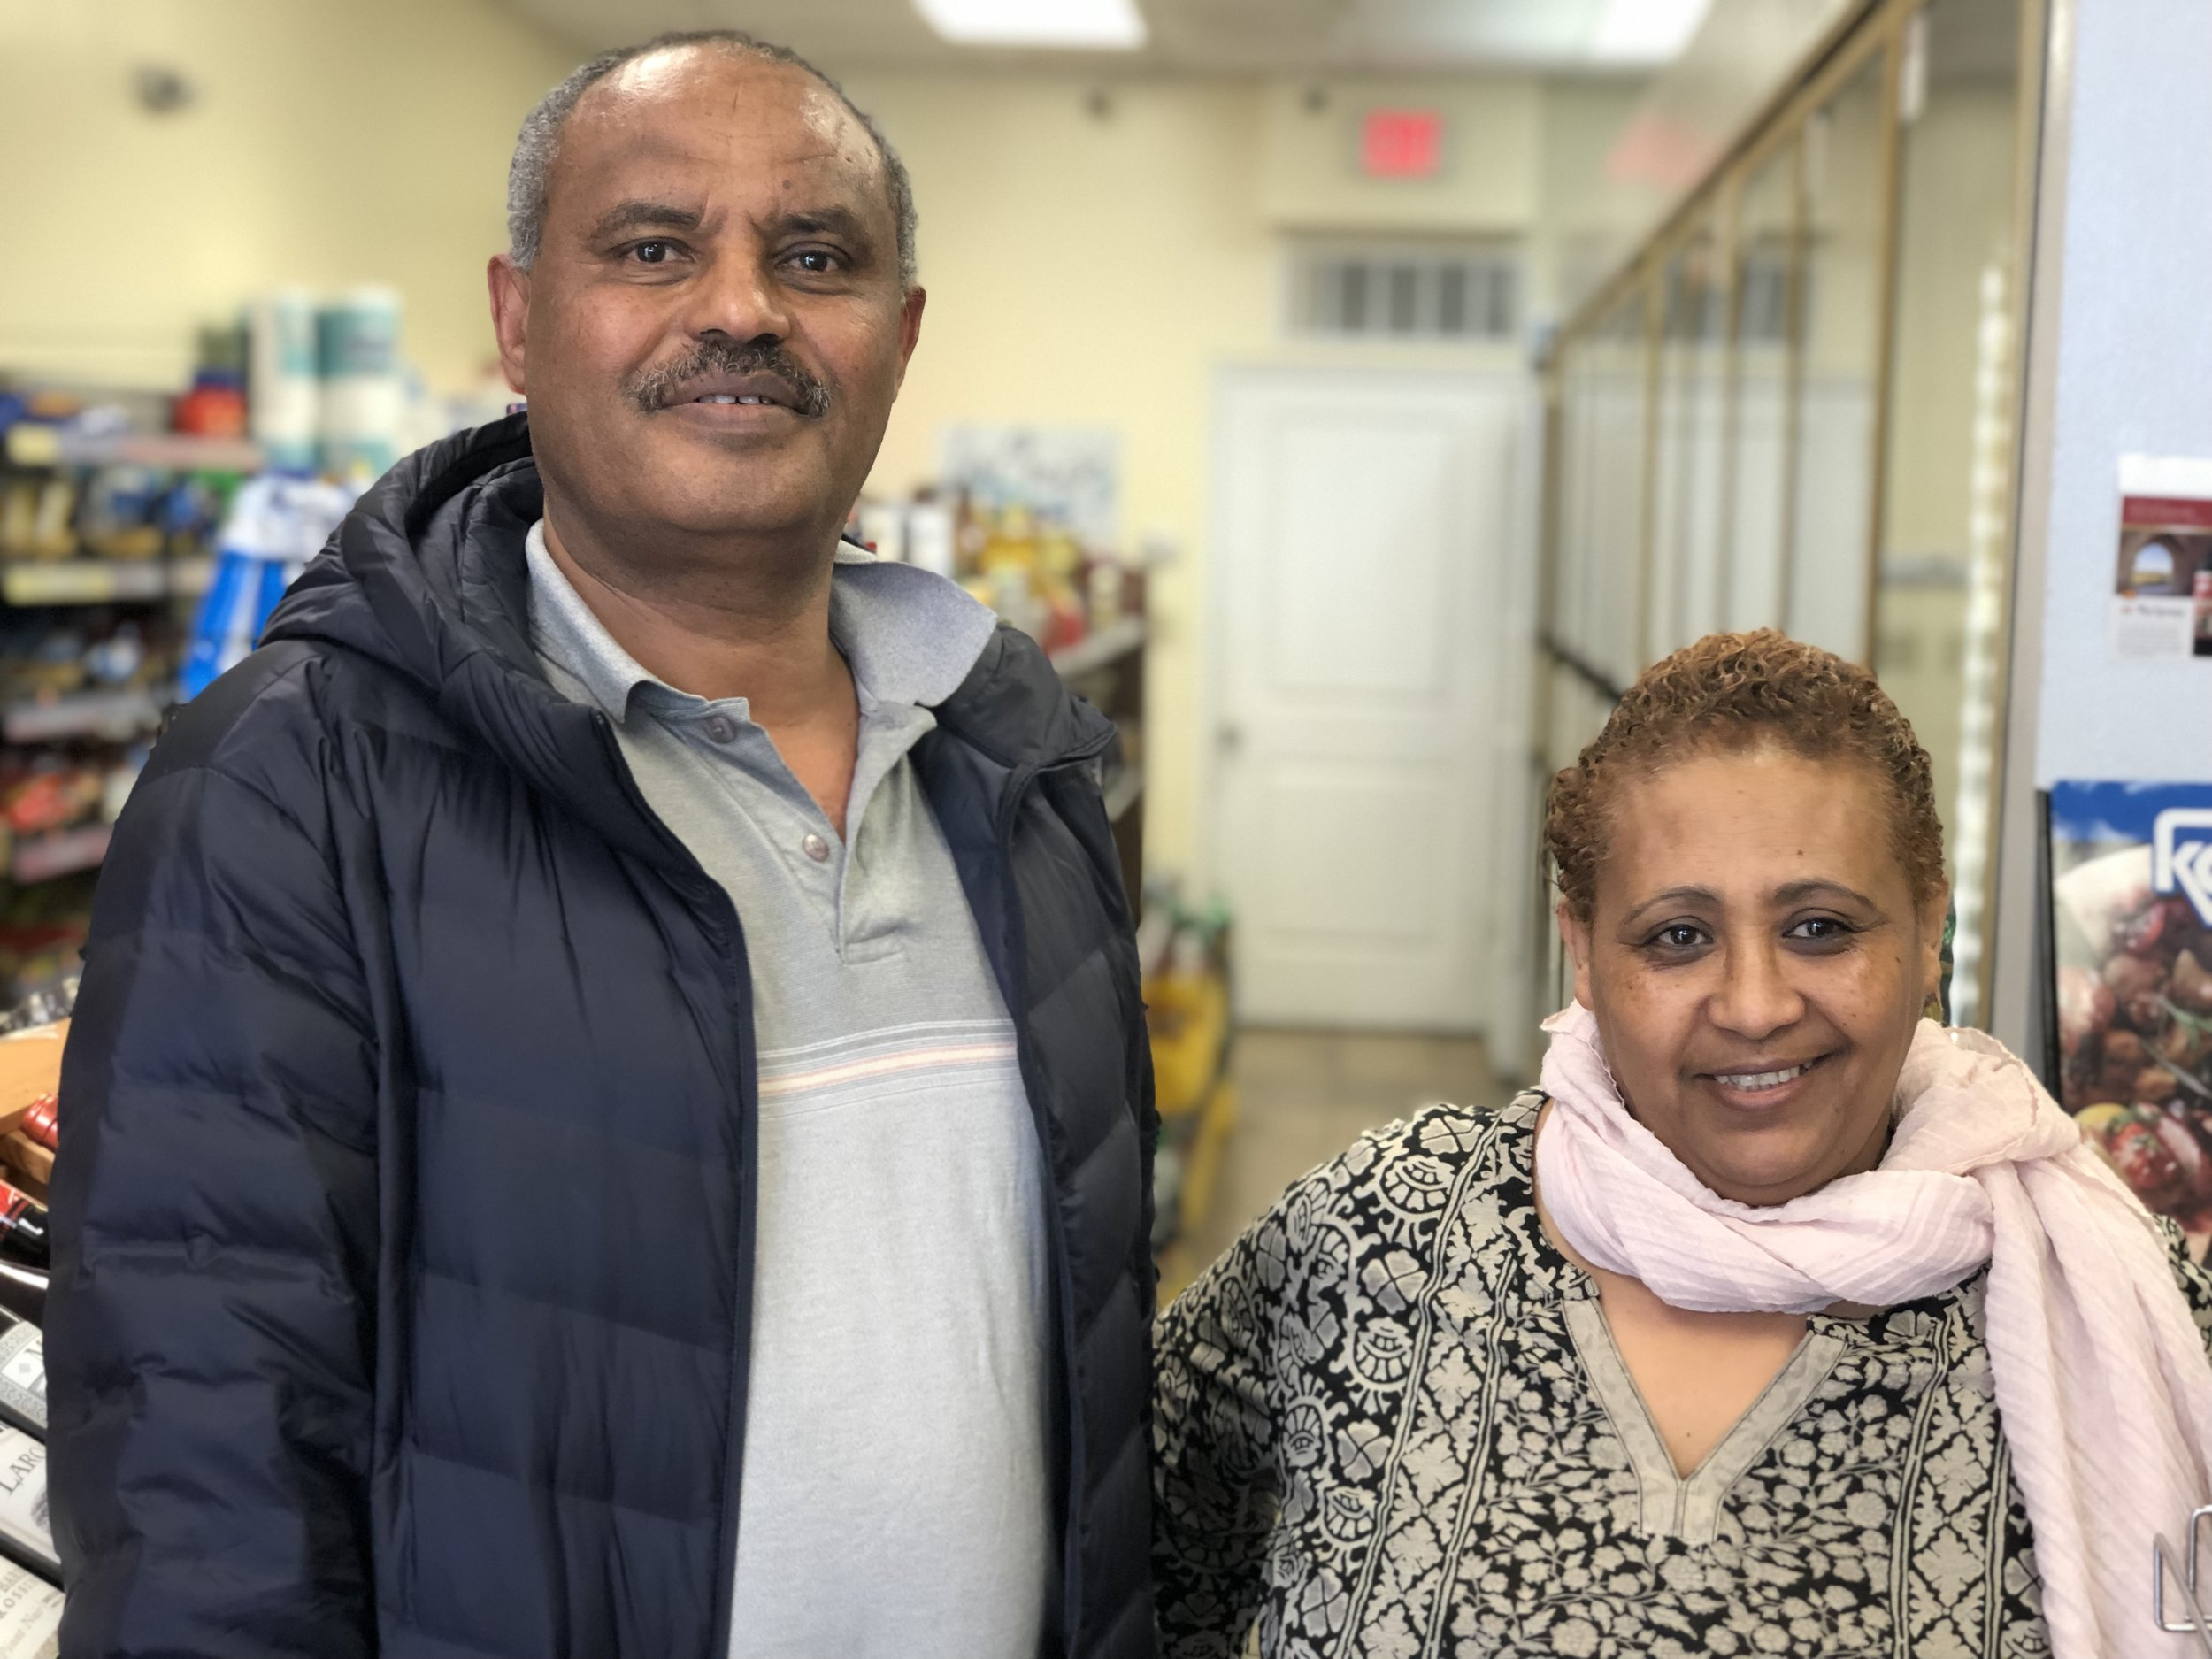 Teshome Checkole and his wife Meaza at the store.